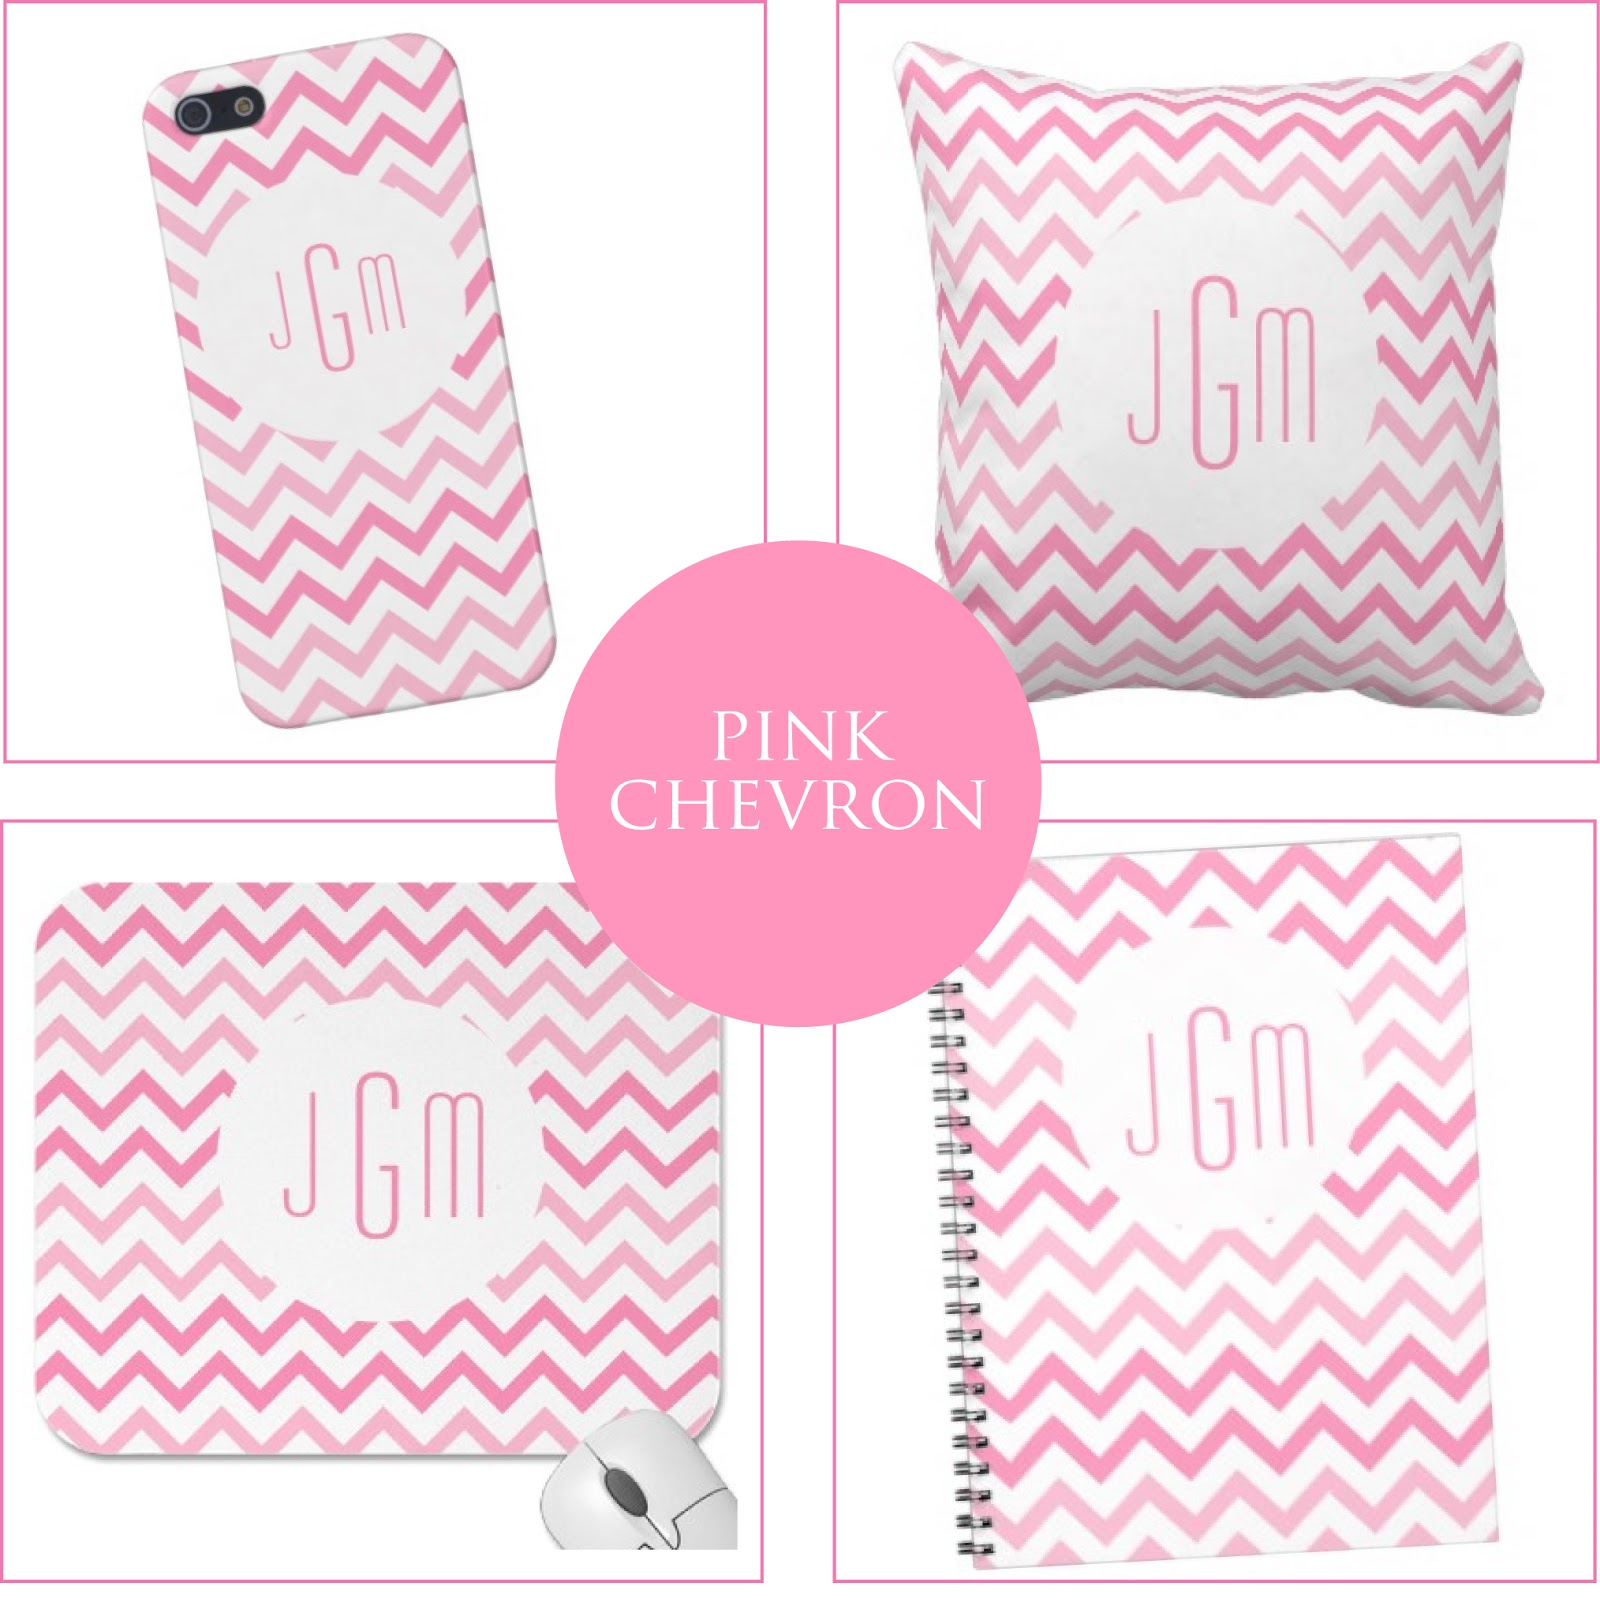 Pink Chevron + Monogram Goodies from Jessica Marie Design